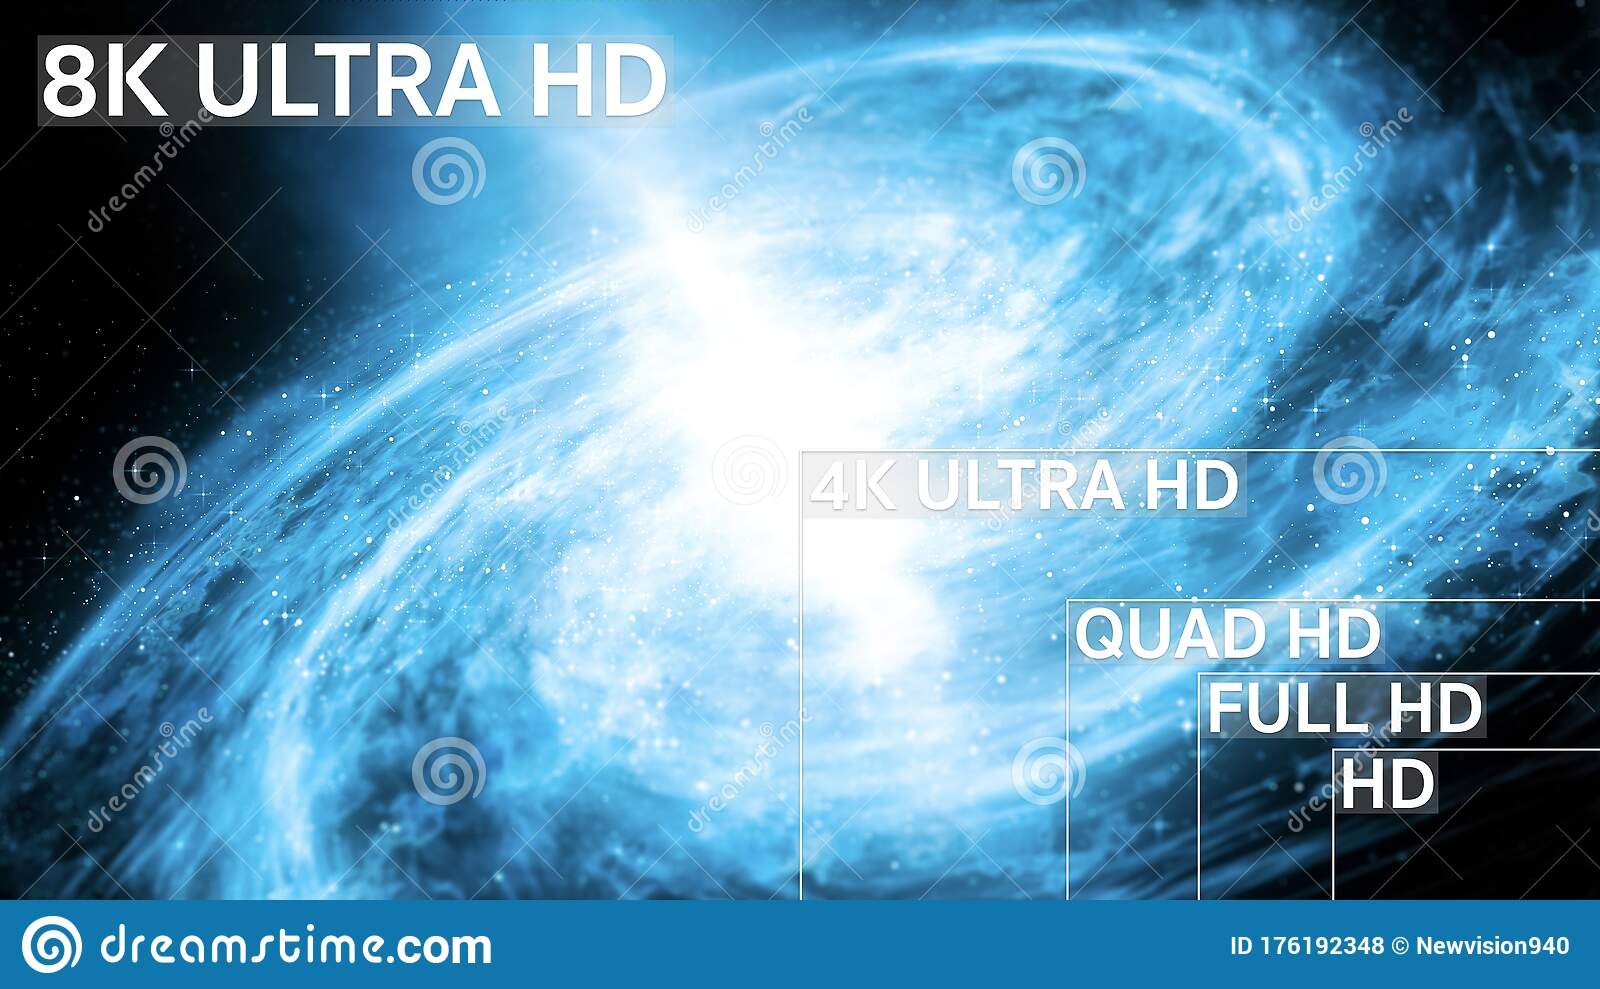 8k 4k Full Hd Hd Standard Television Resolution Size Stock Illustration Illustration Of Resolution Space 176192348